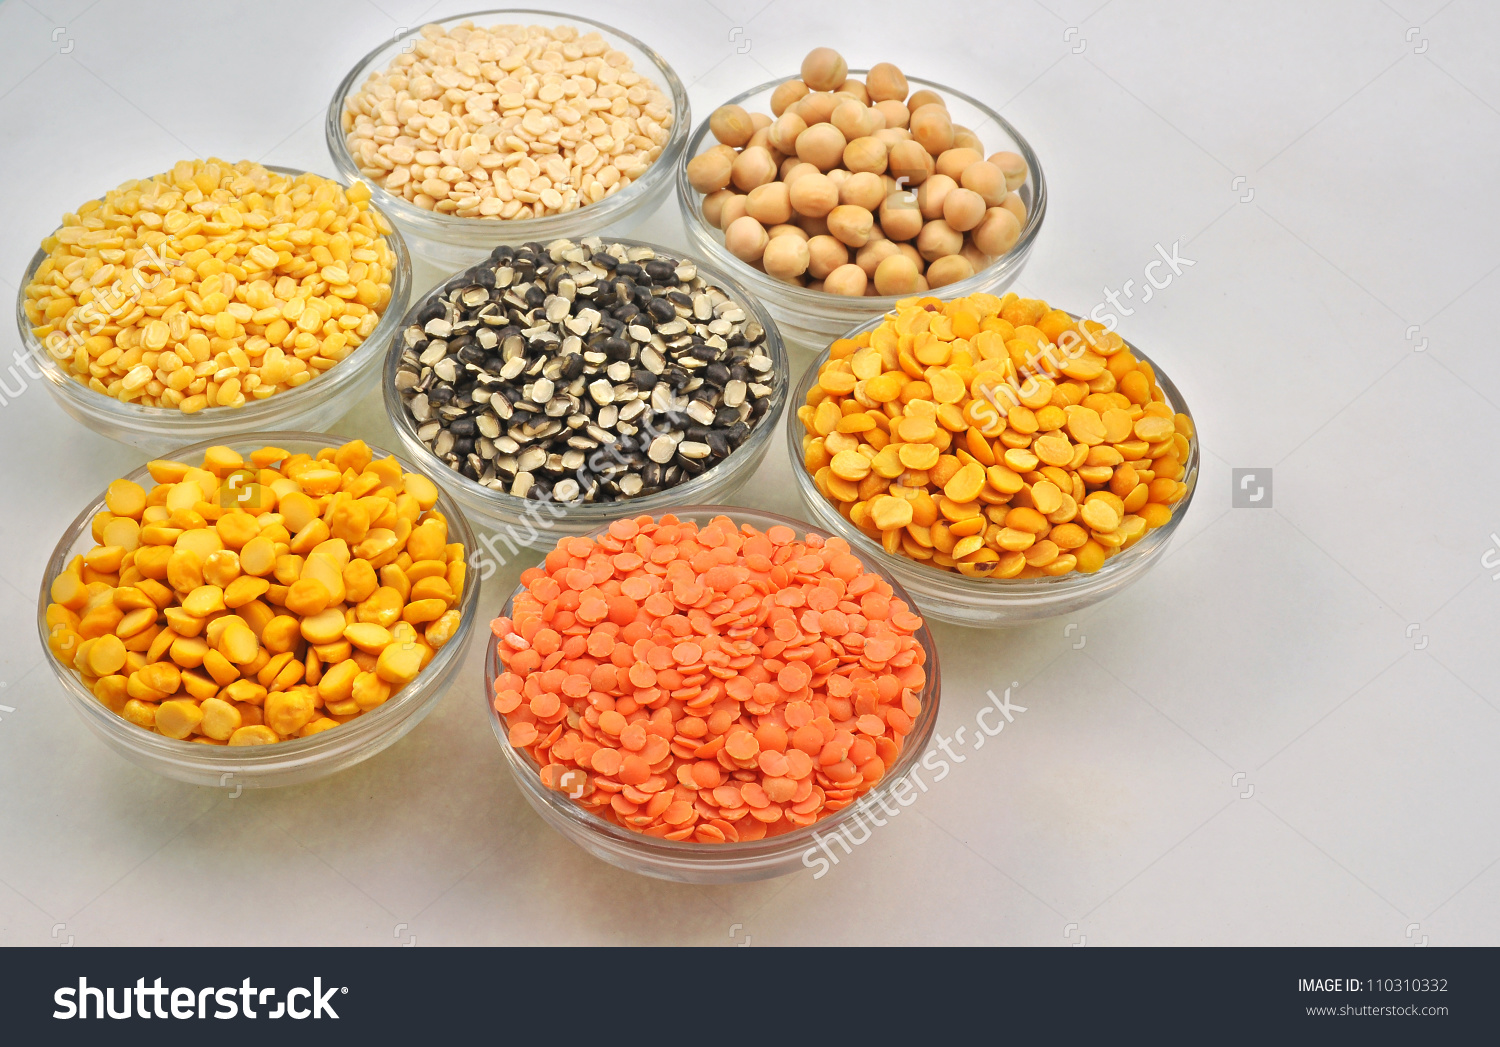 Close Top View Variety Husked Pulses Stock Photo 110310332.